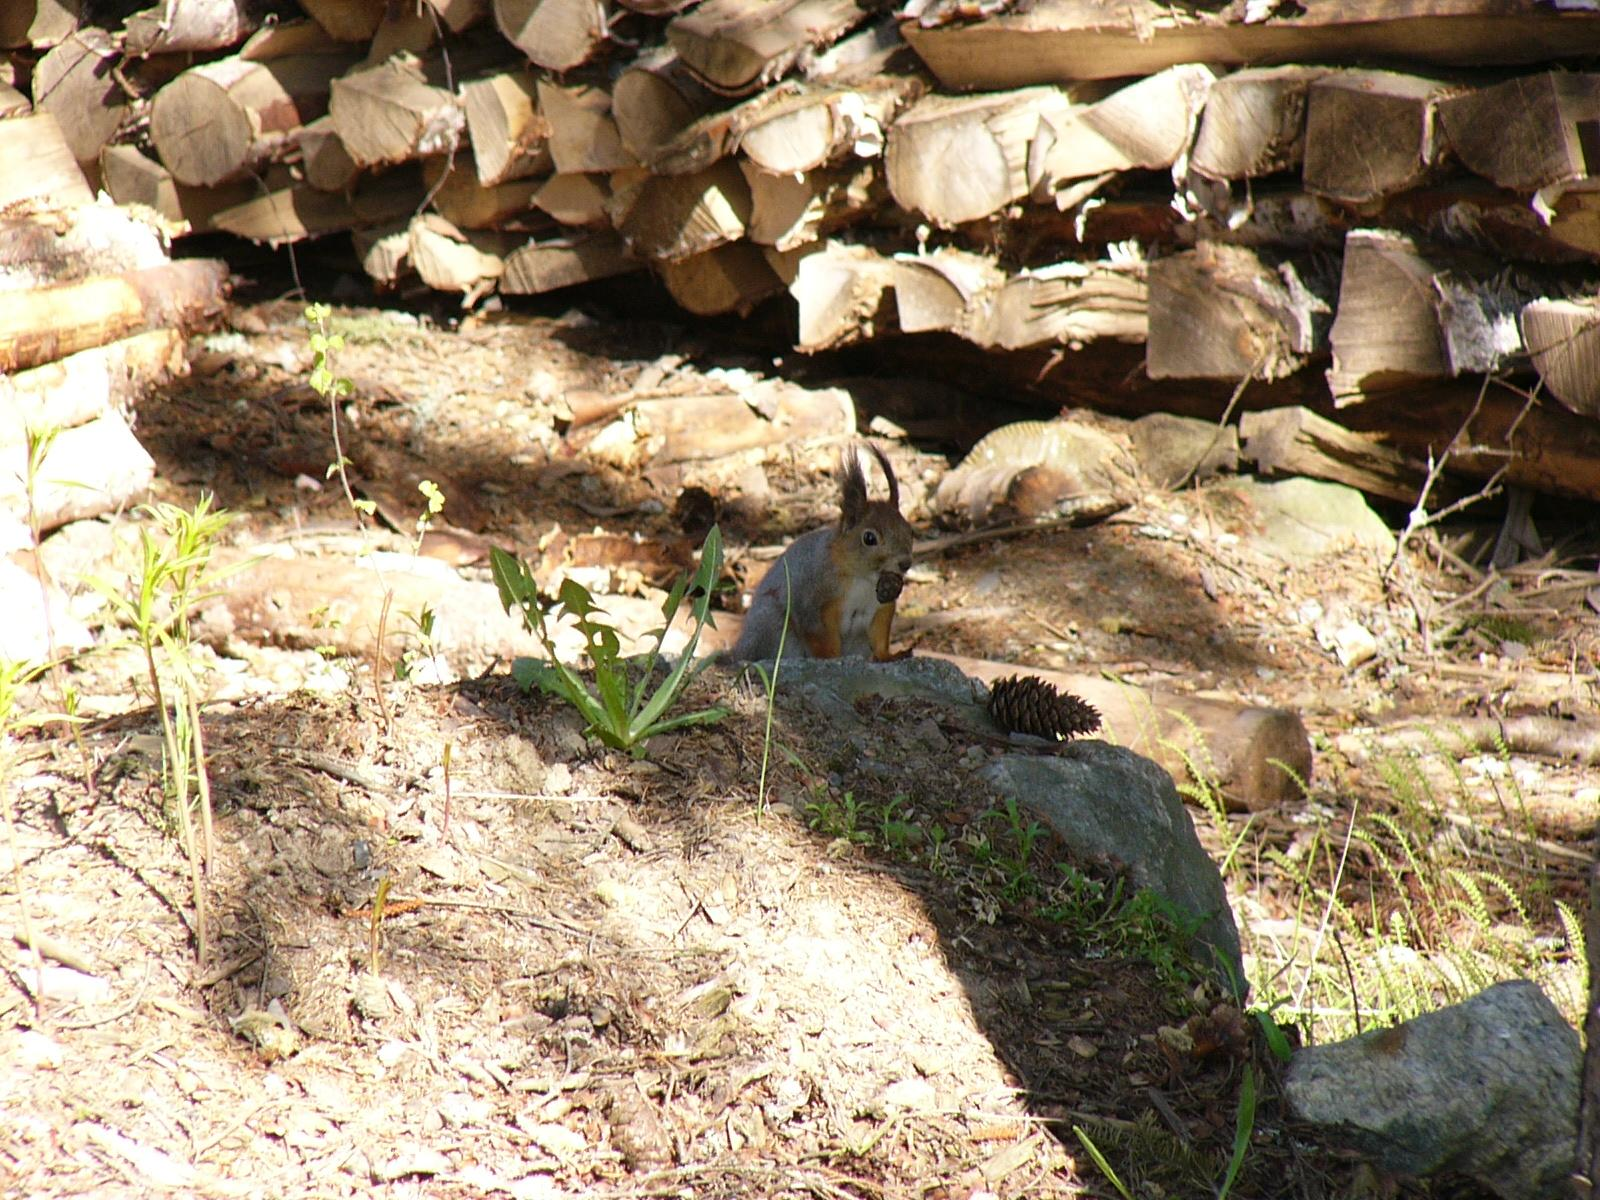 You are viewing the Squirrel wallpaper named Squirrel 3.